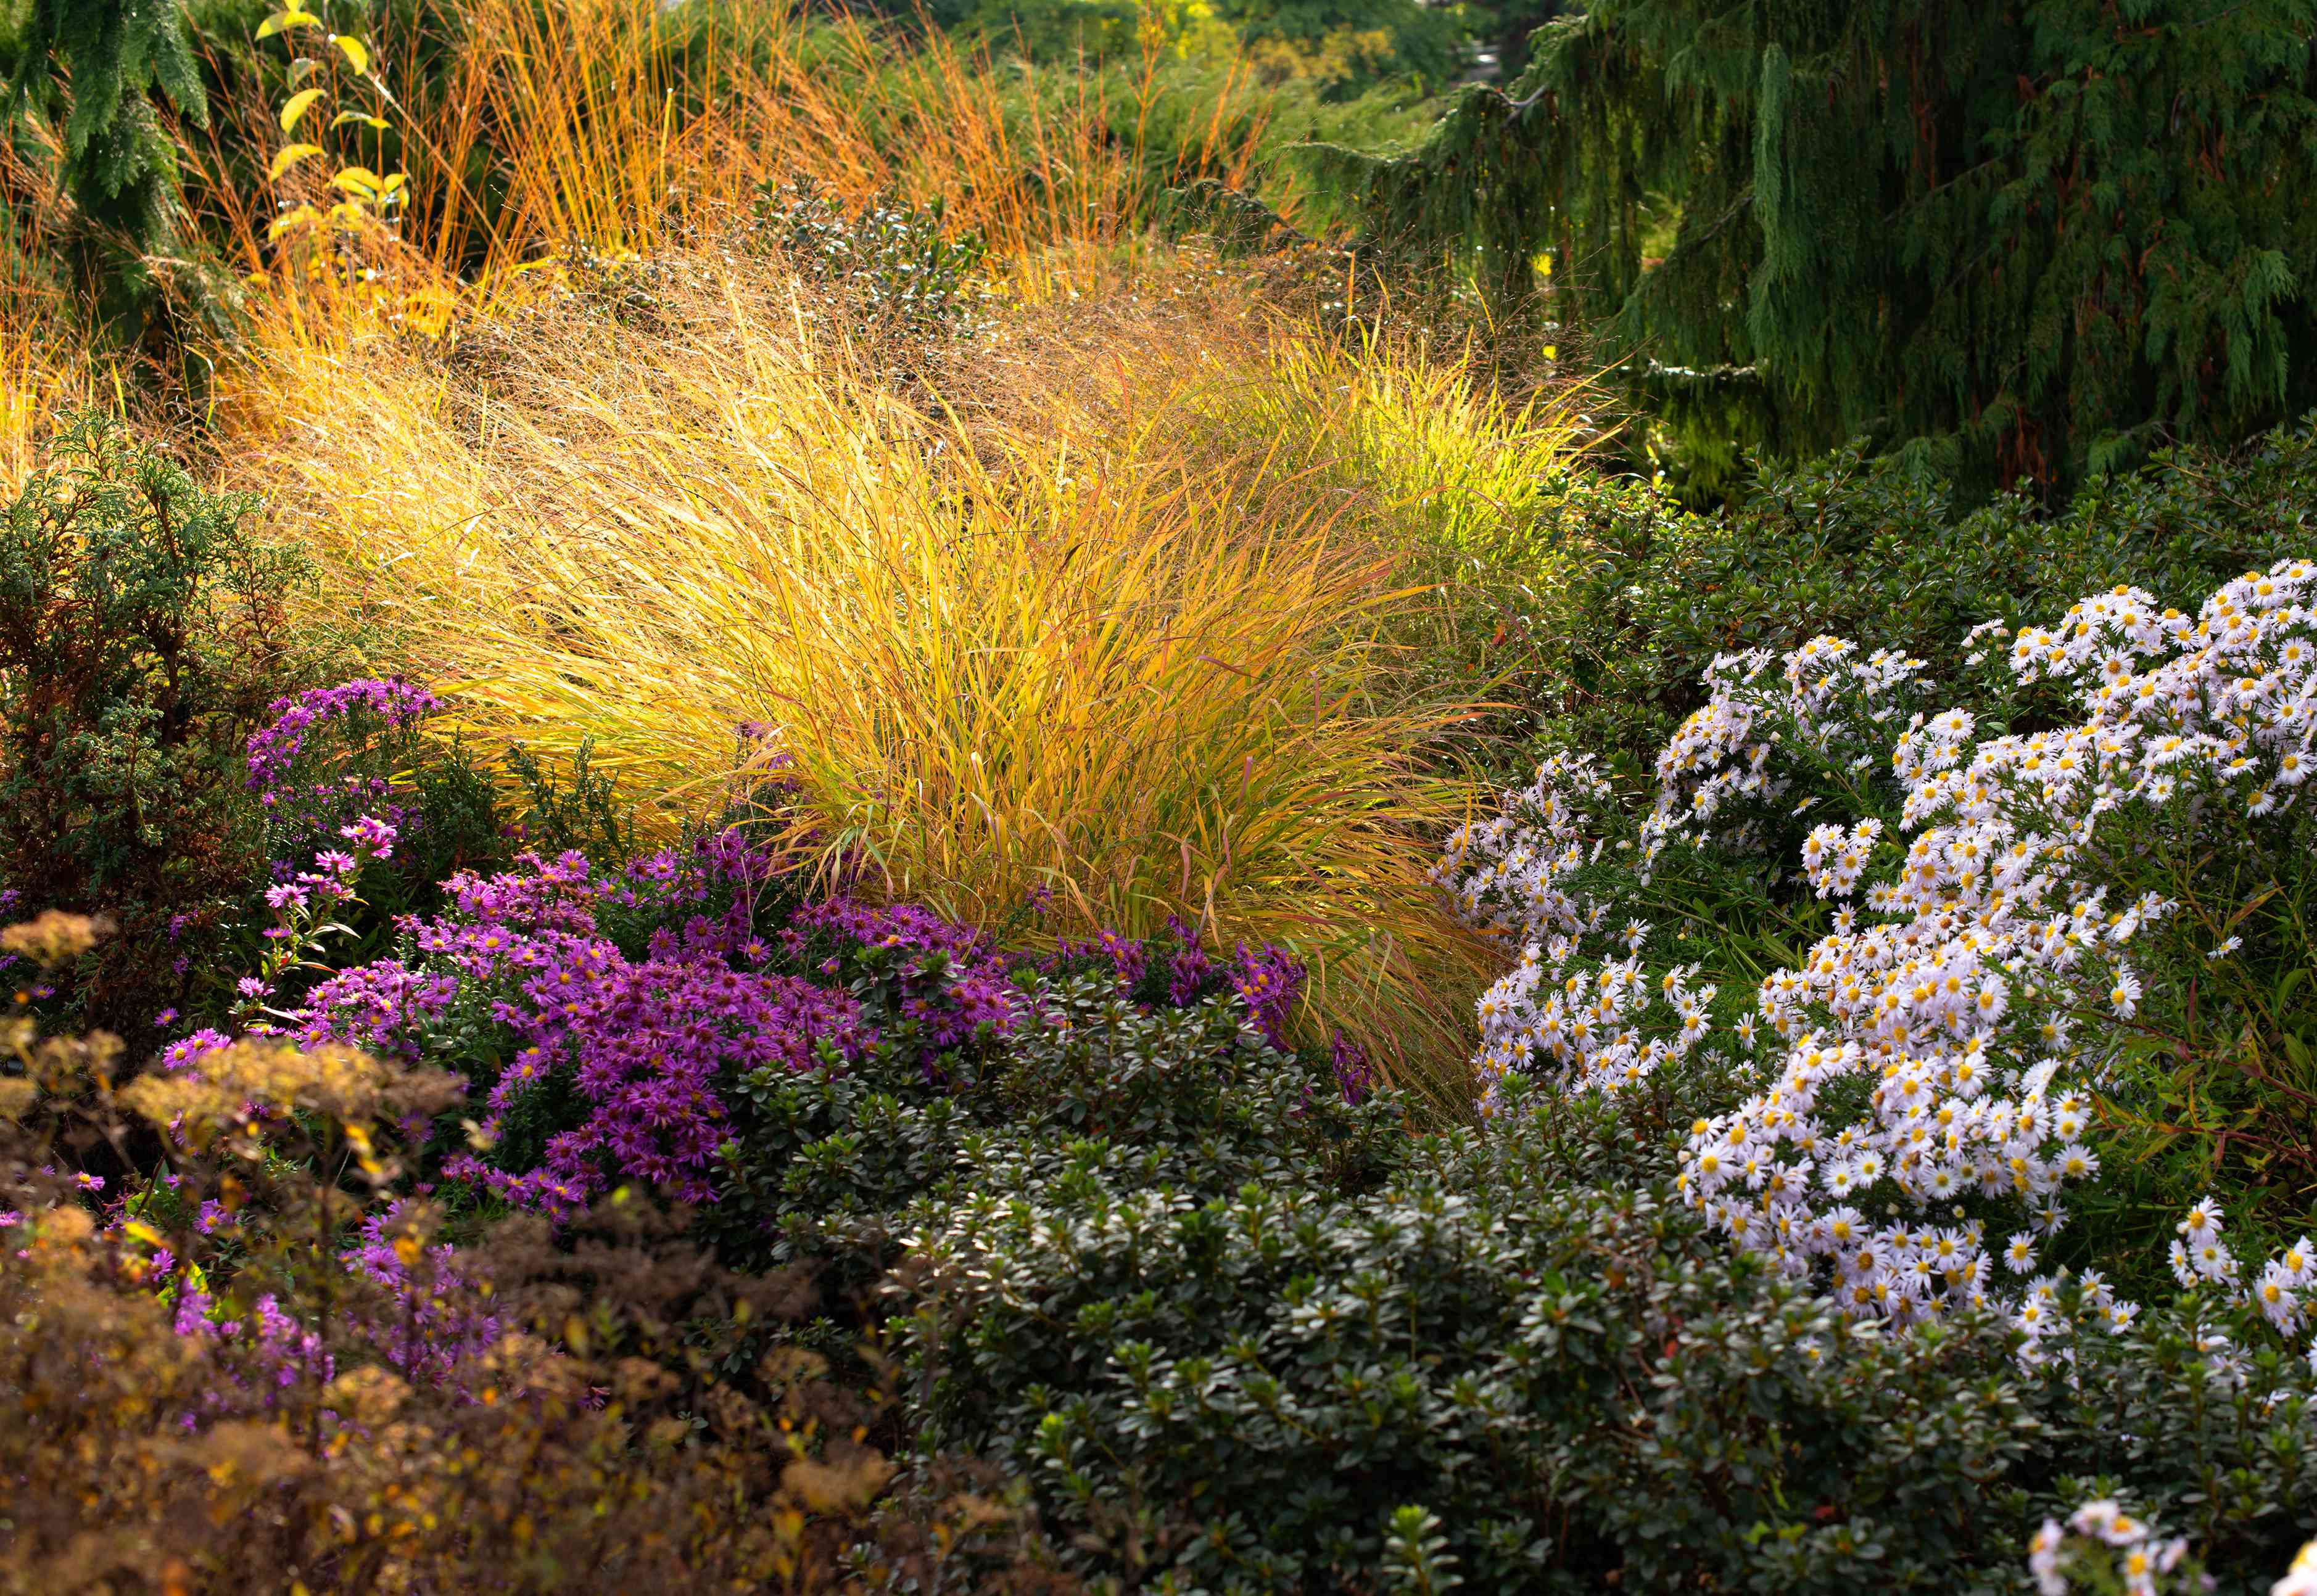 Switchgrass with bright yellow stalks in between purple and white flower bushes